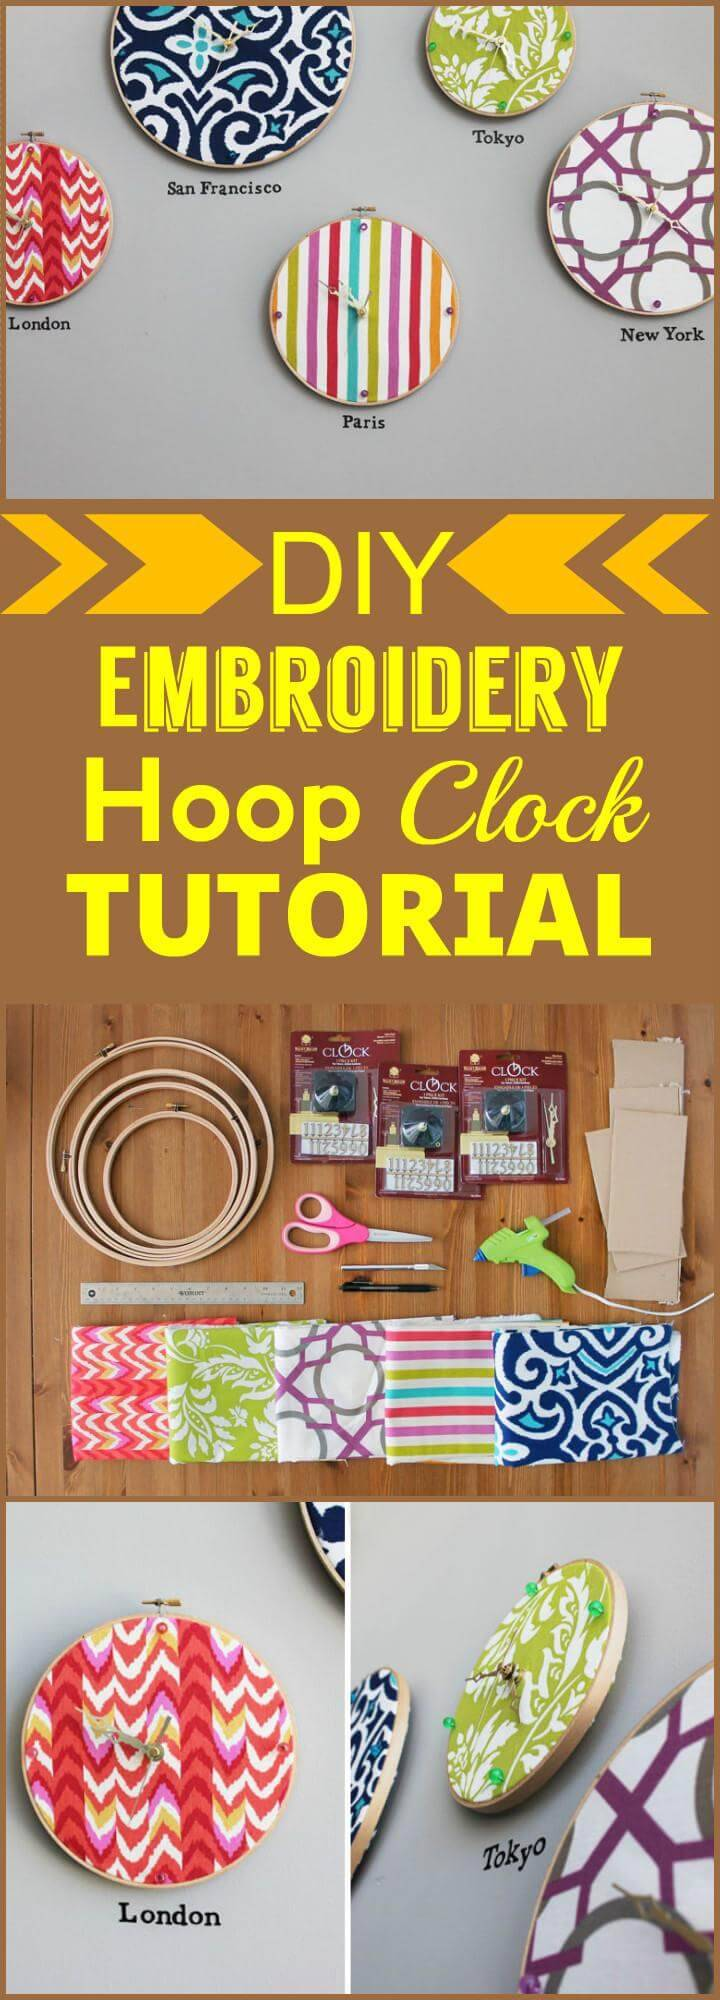 DIY embroidery hoop clock tutorial